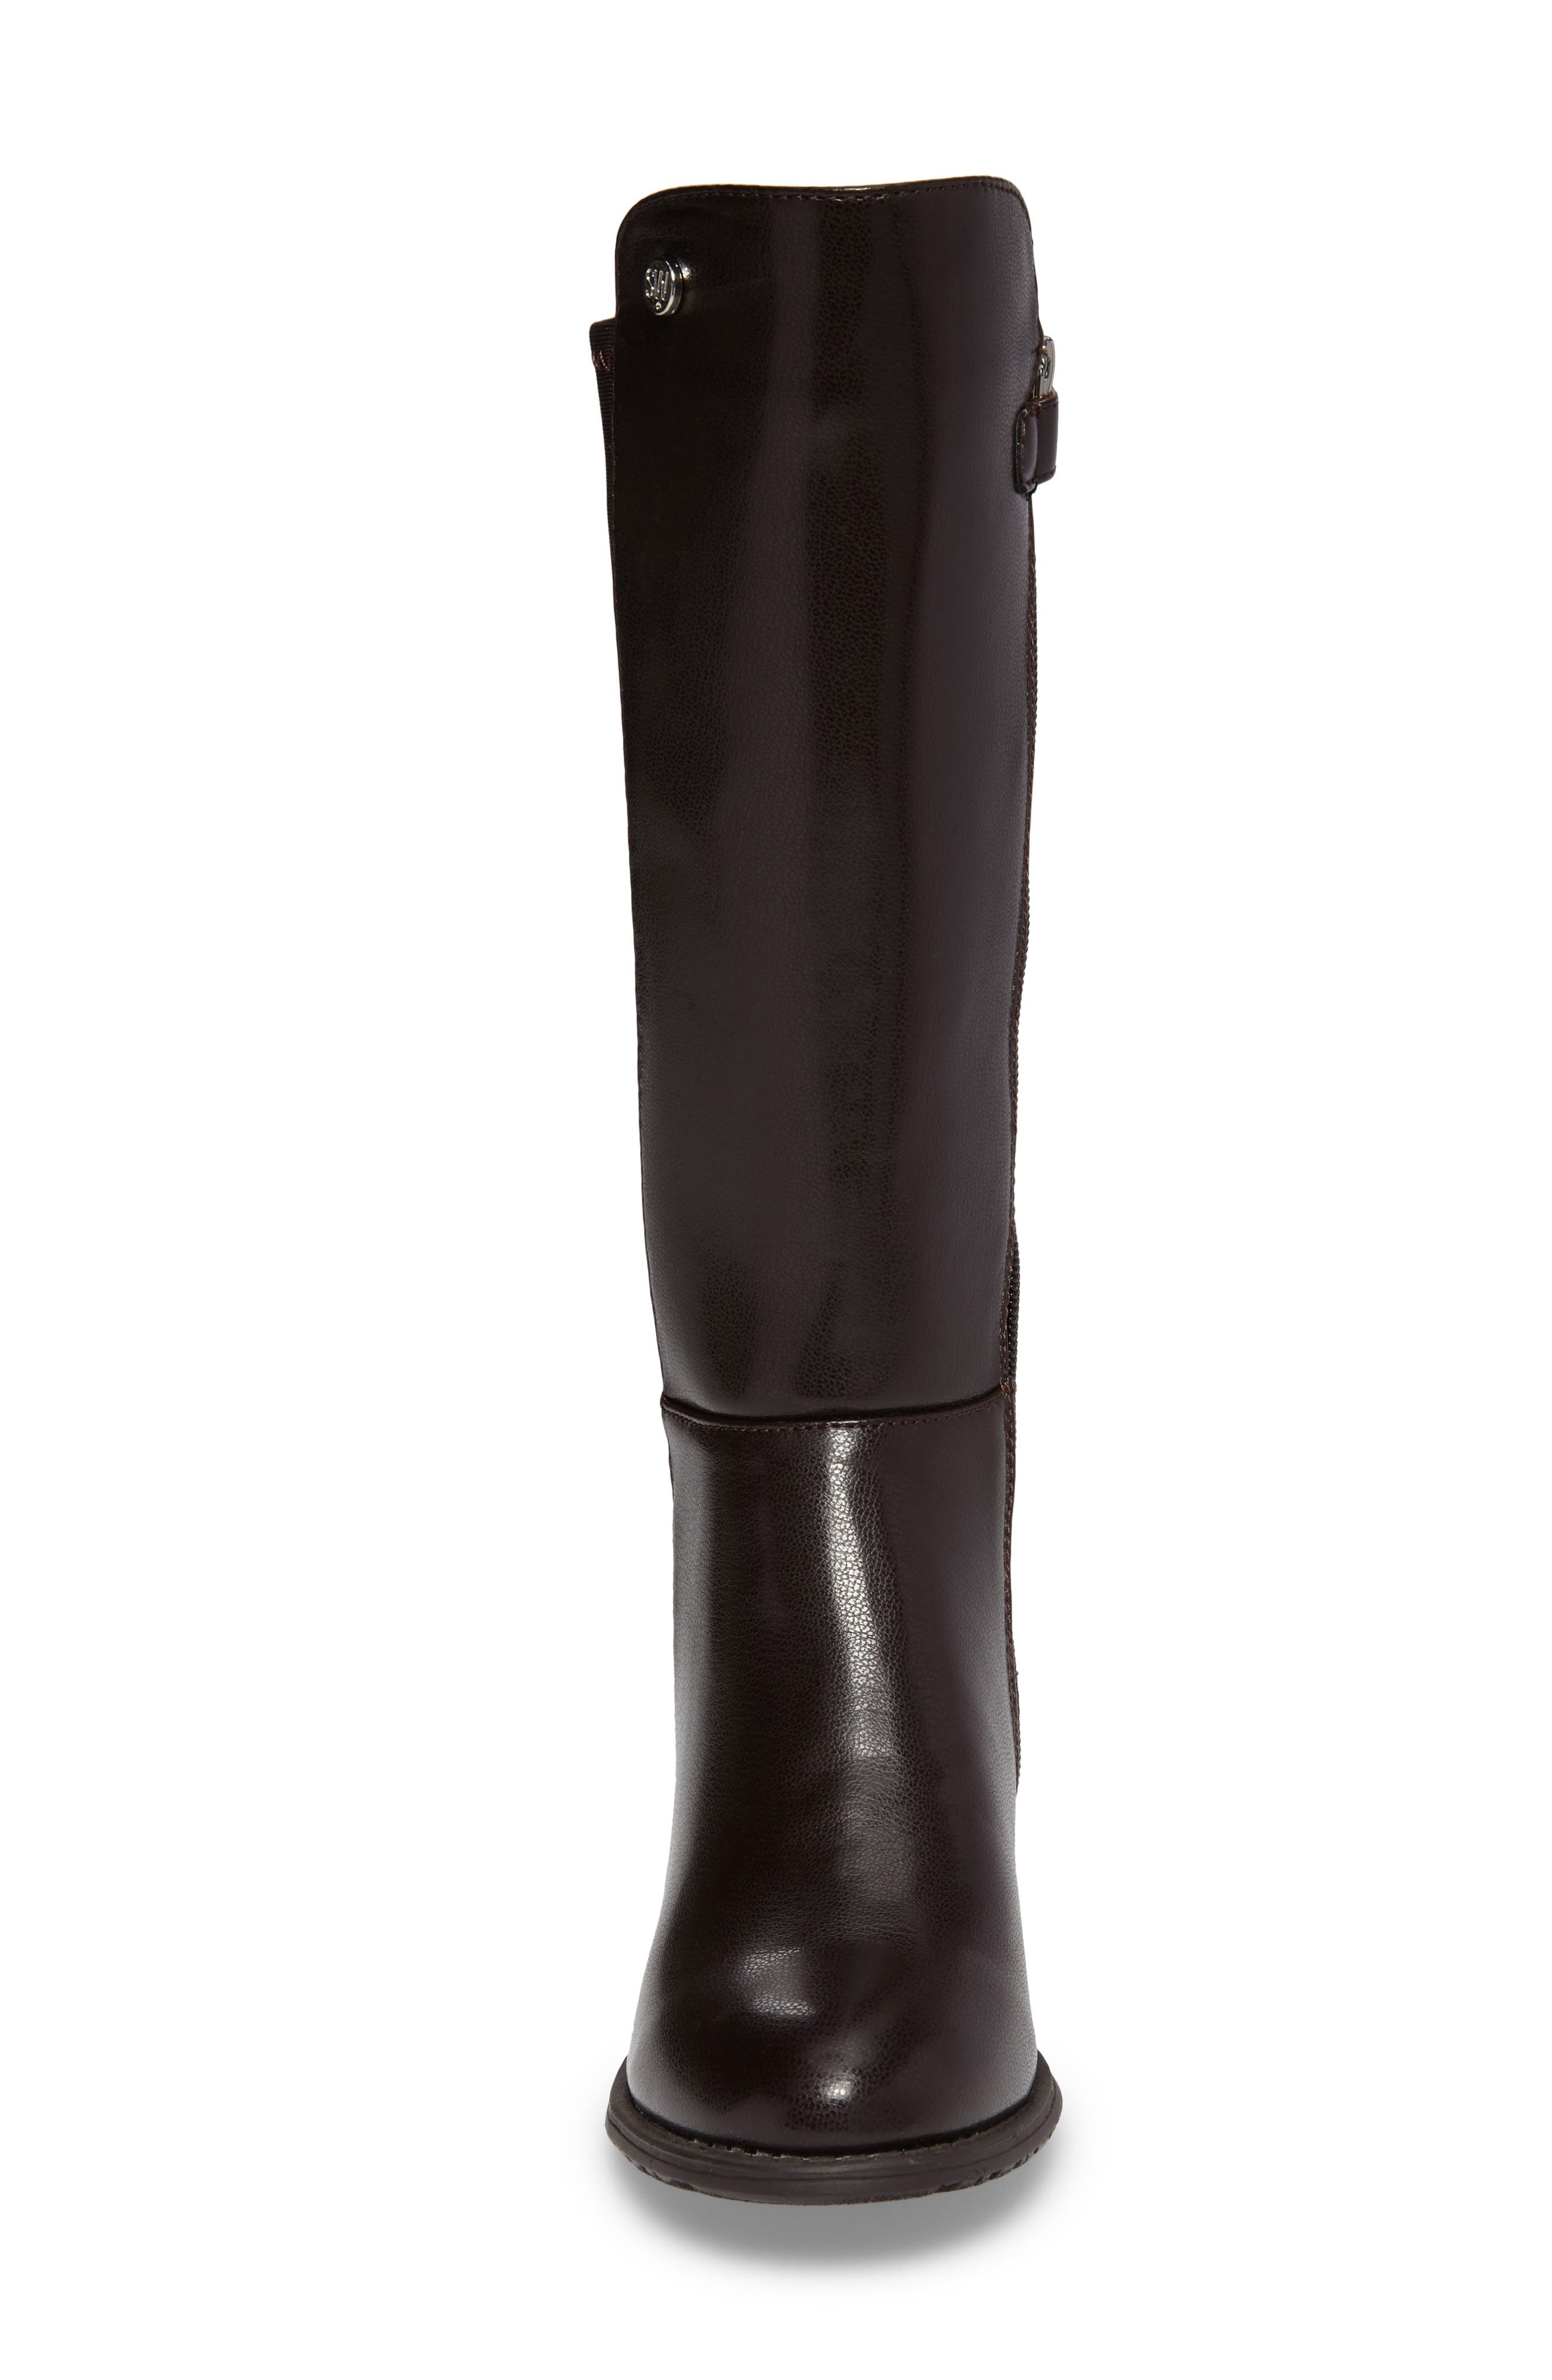 5050 Tall Riding Boot,                             Alternate thumbnail 8, color,